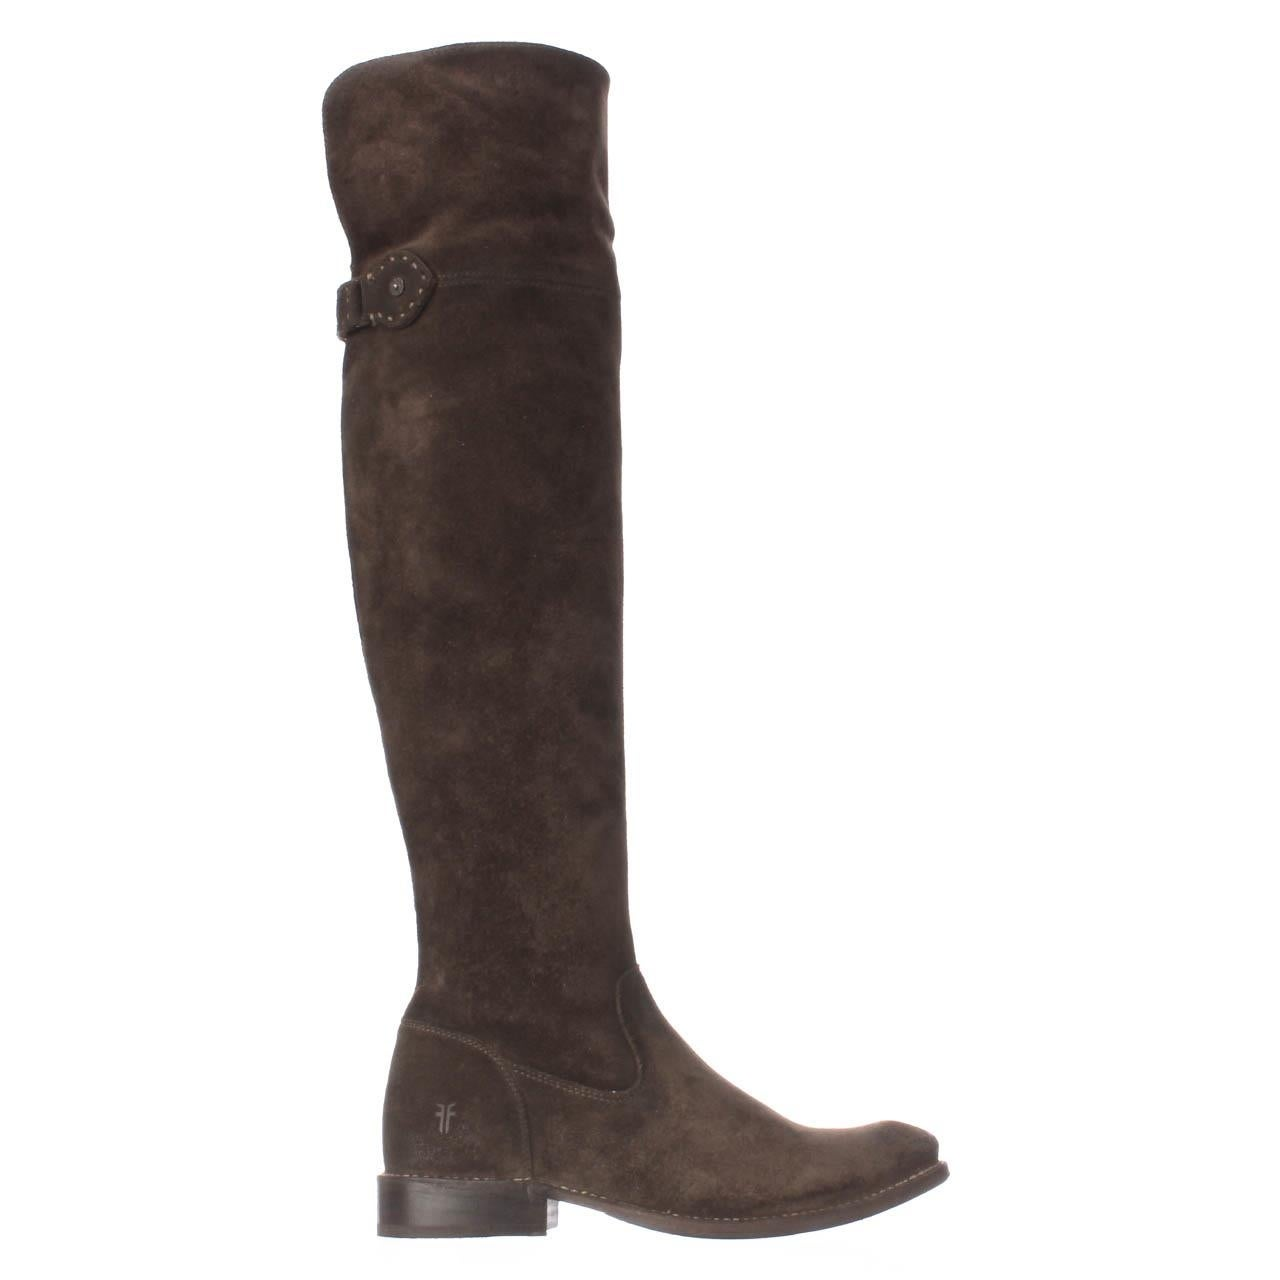 13034b4495a Shop FRYE Shirley Over-The-Knee Engineer Boots